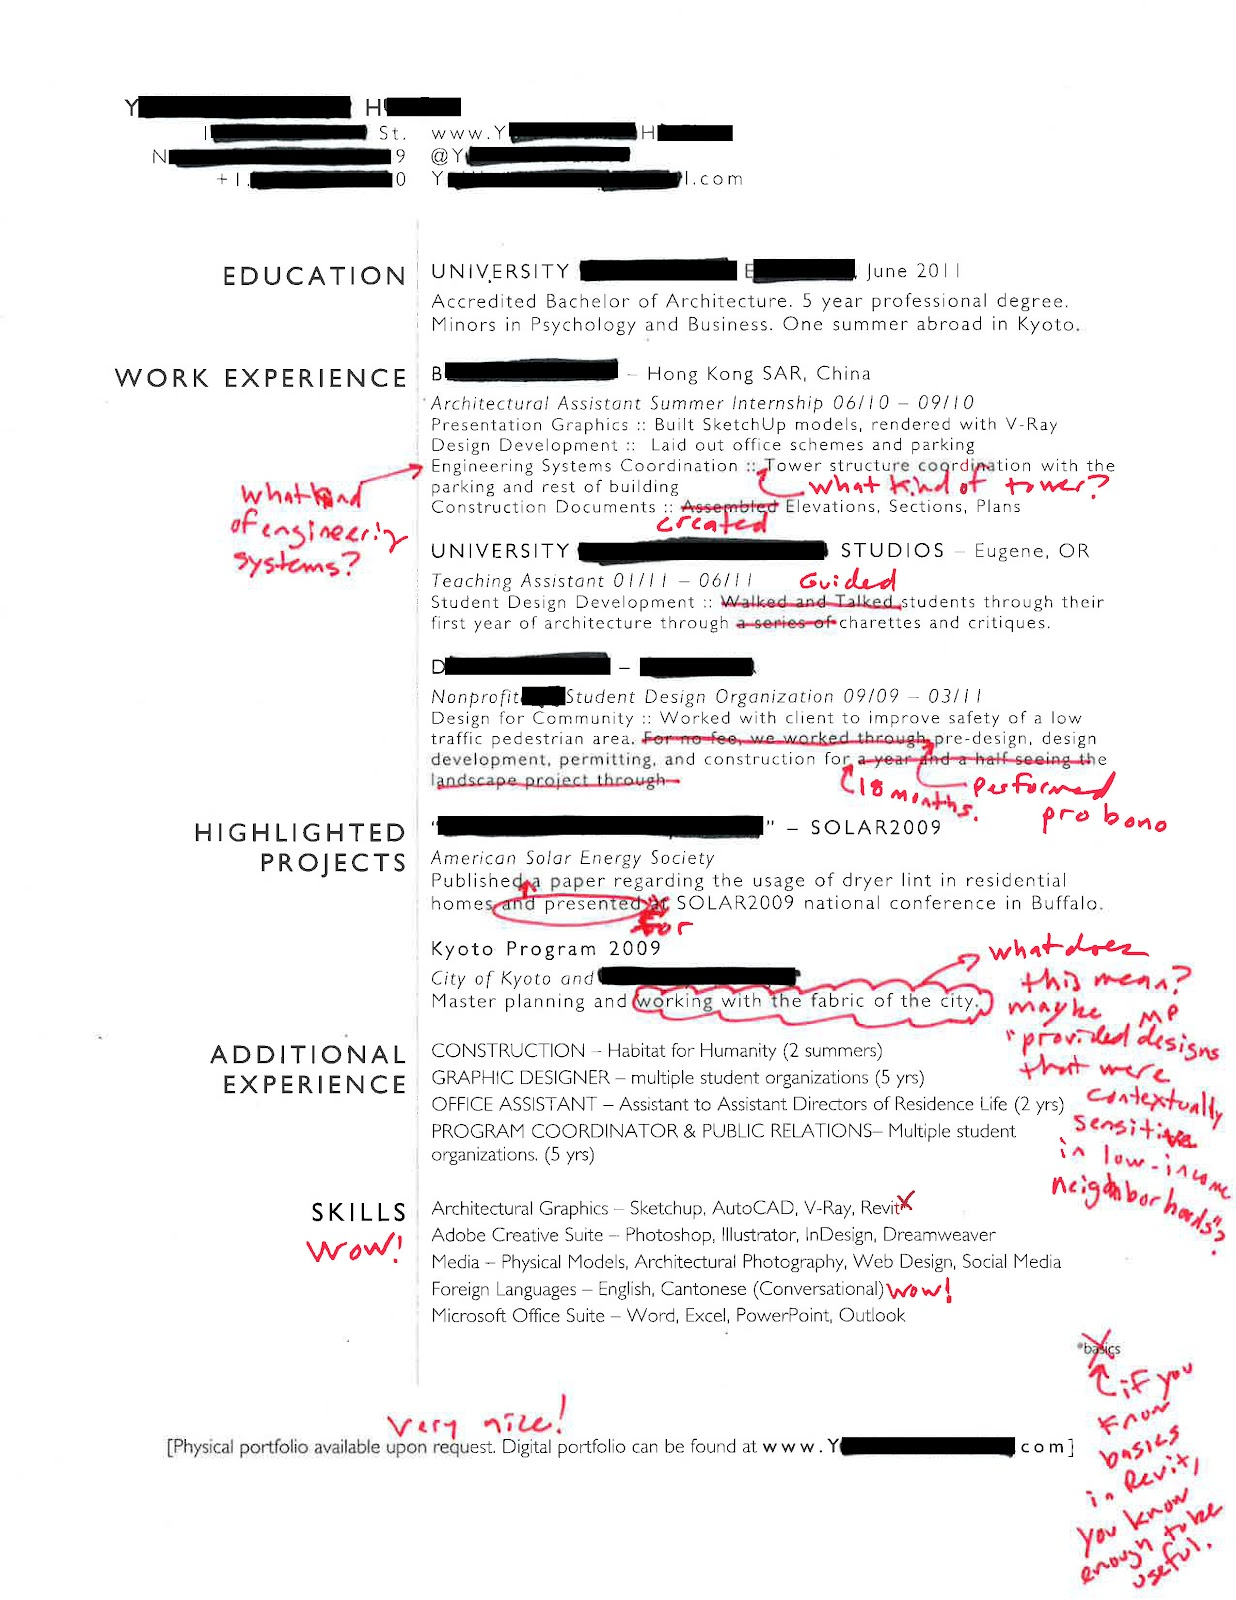 Intern 101  International Experience Resume